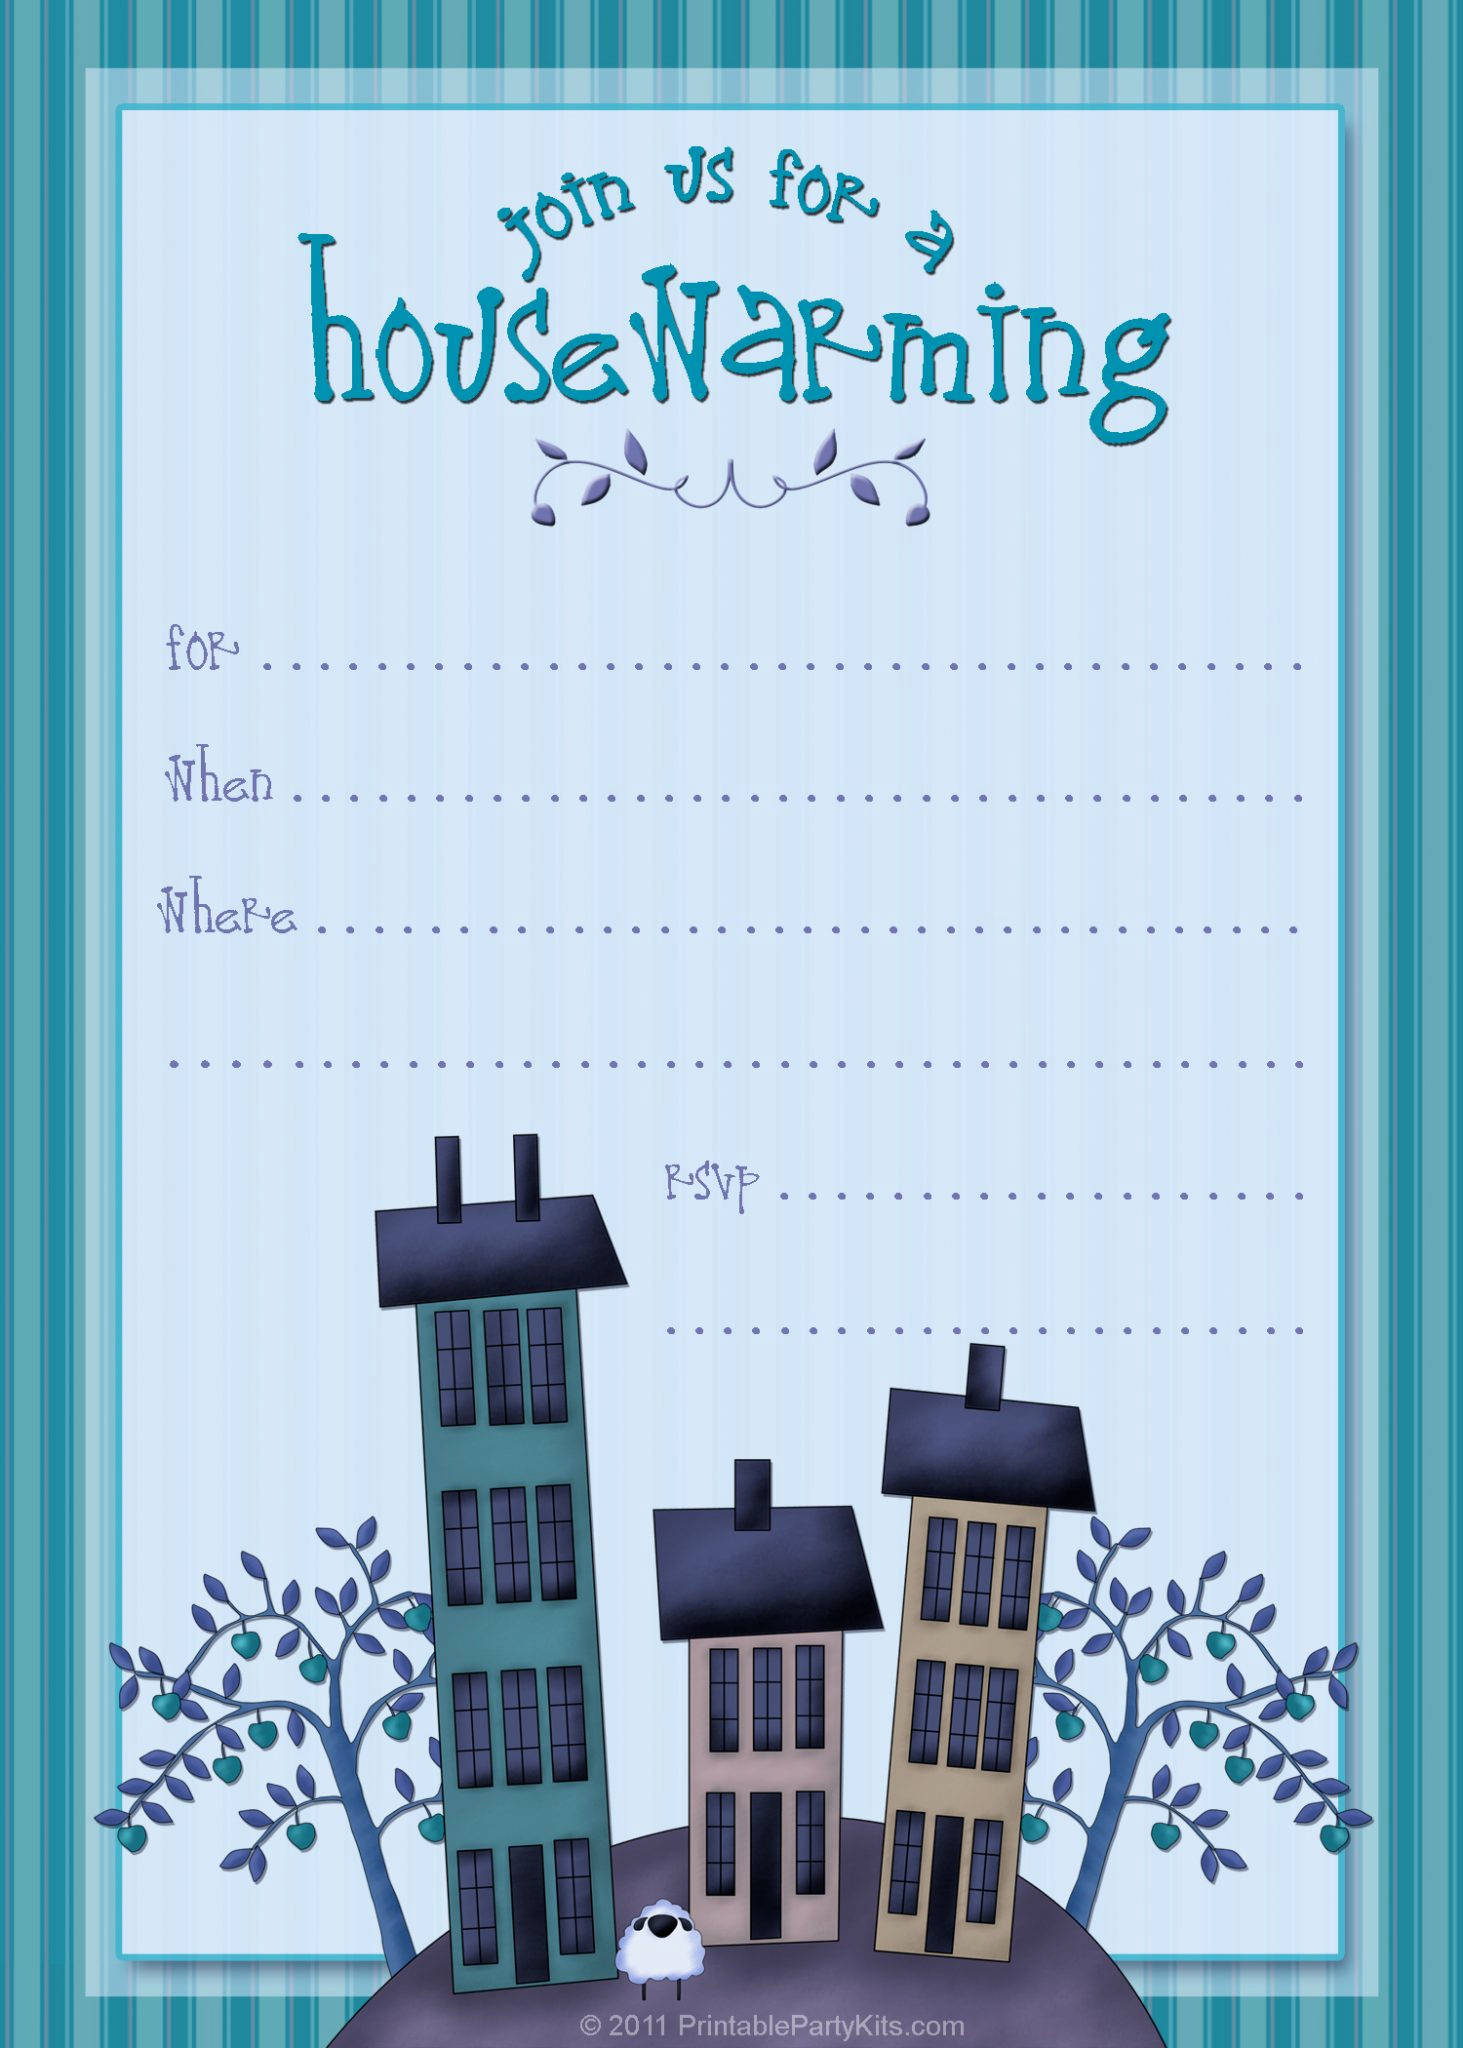 Housewarming Invitation Template Free Awesome Free Printable Housewarming Party Invitations Printable